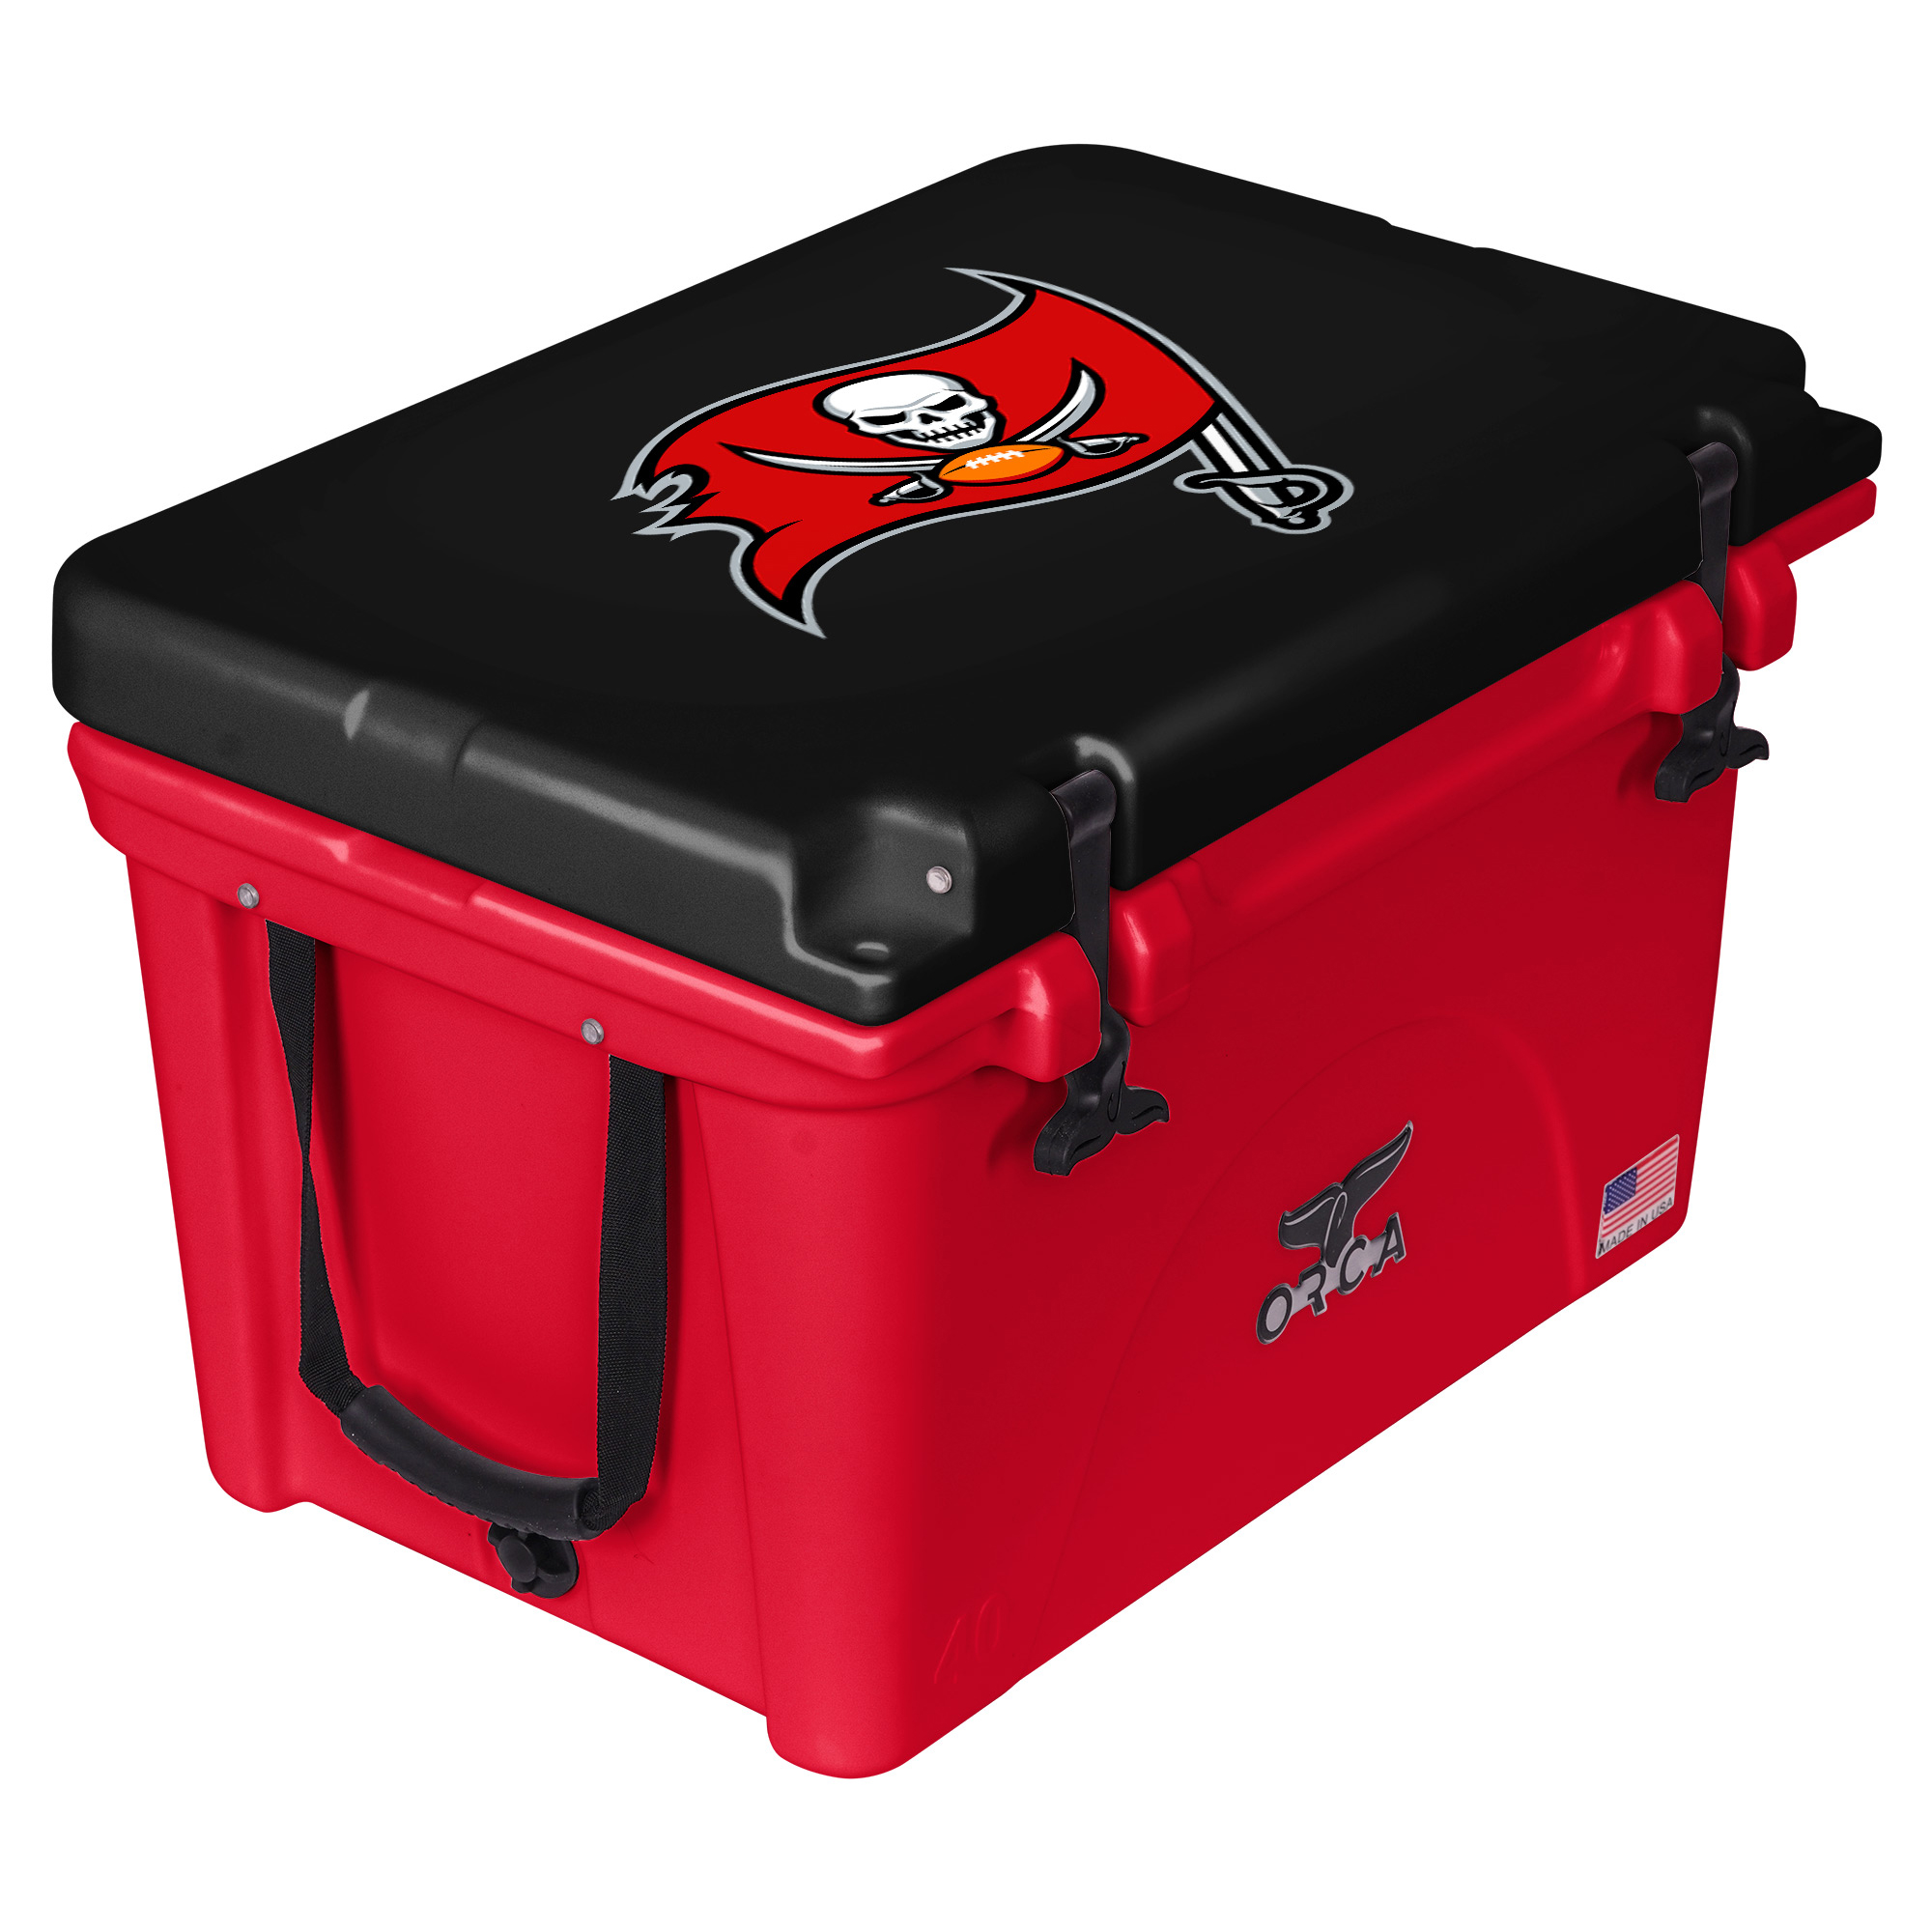 Tampa Bay Buccaneers ORCA 40-Quart Hard-Sided Cooler - Red/Black - No Size